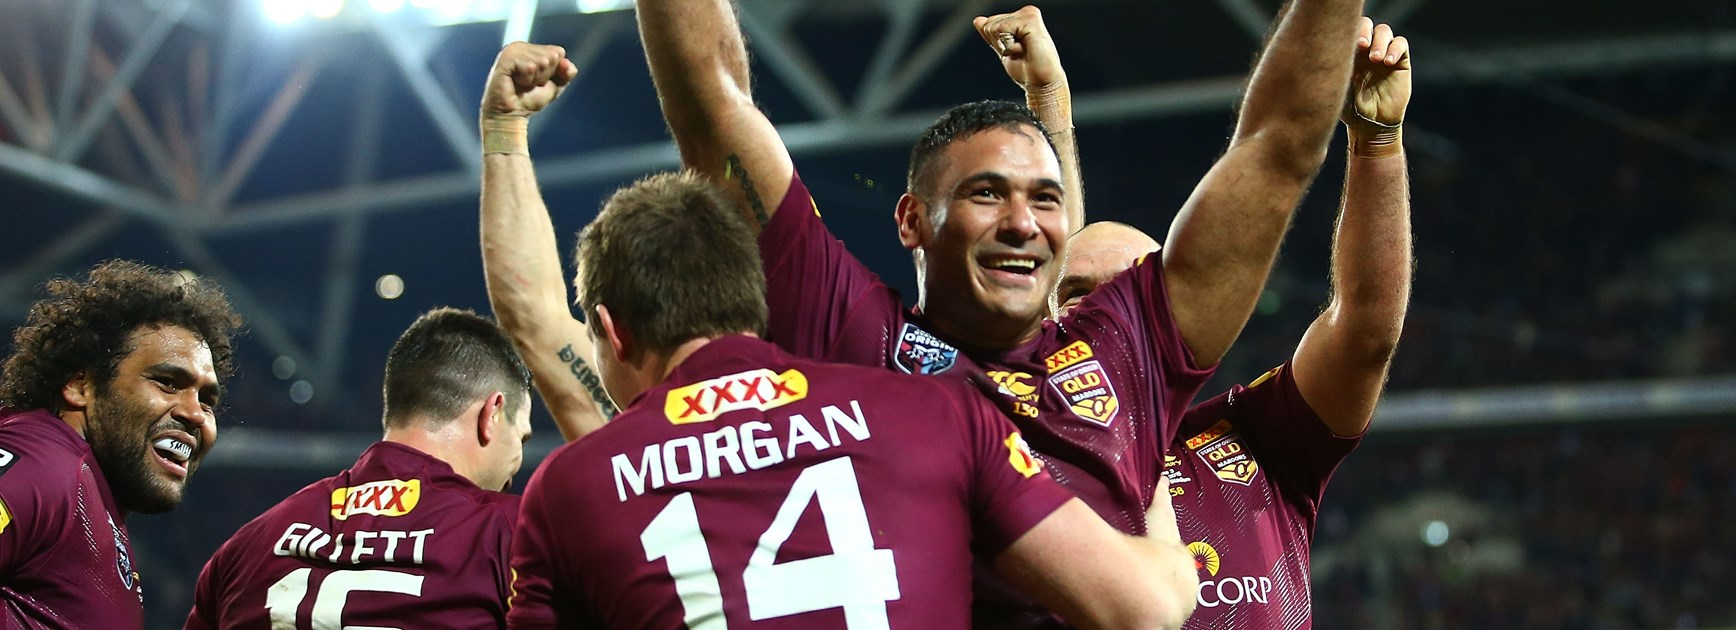 Being selected for the Queensland Maroons is an honour